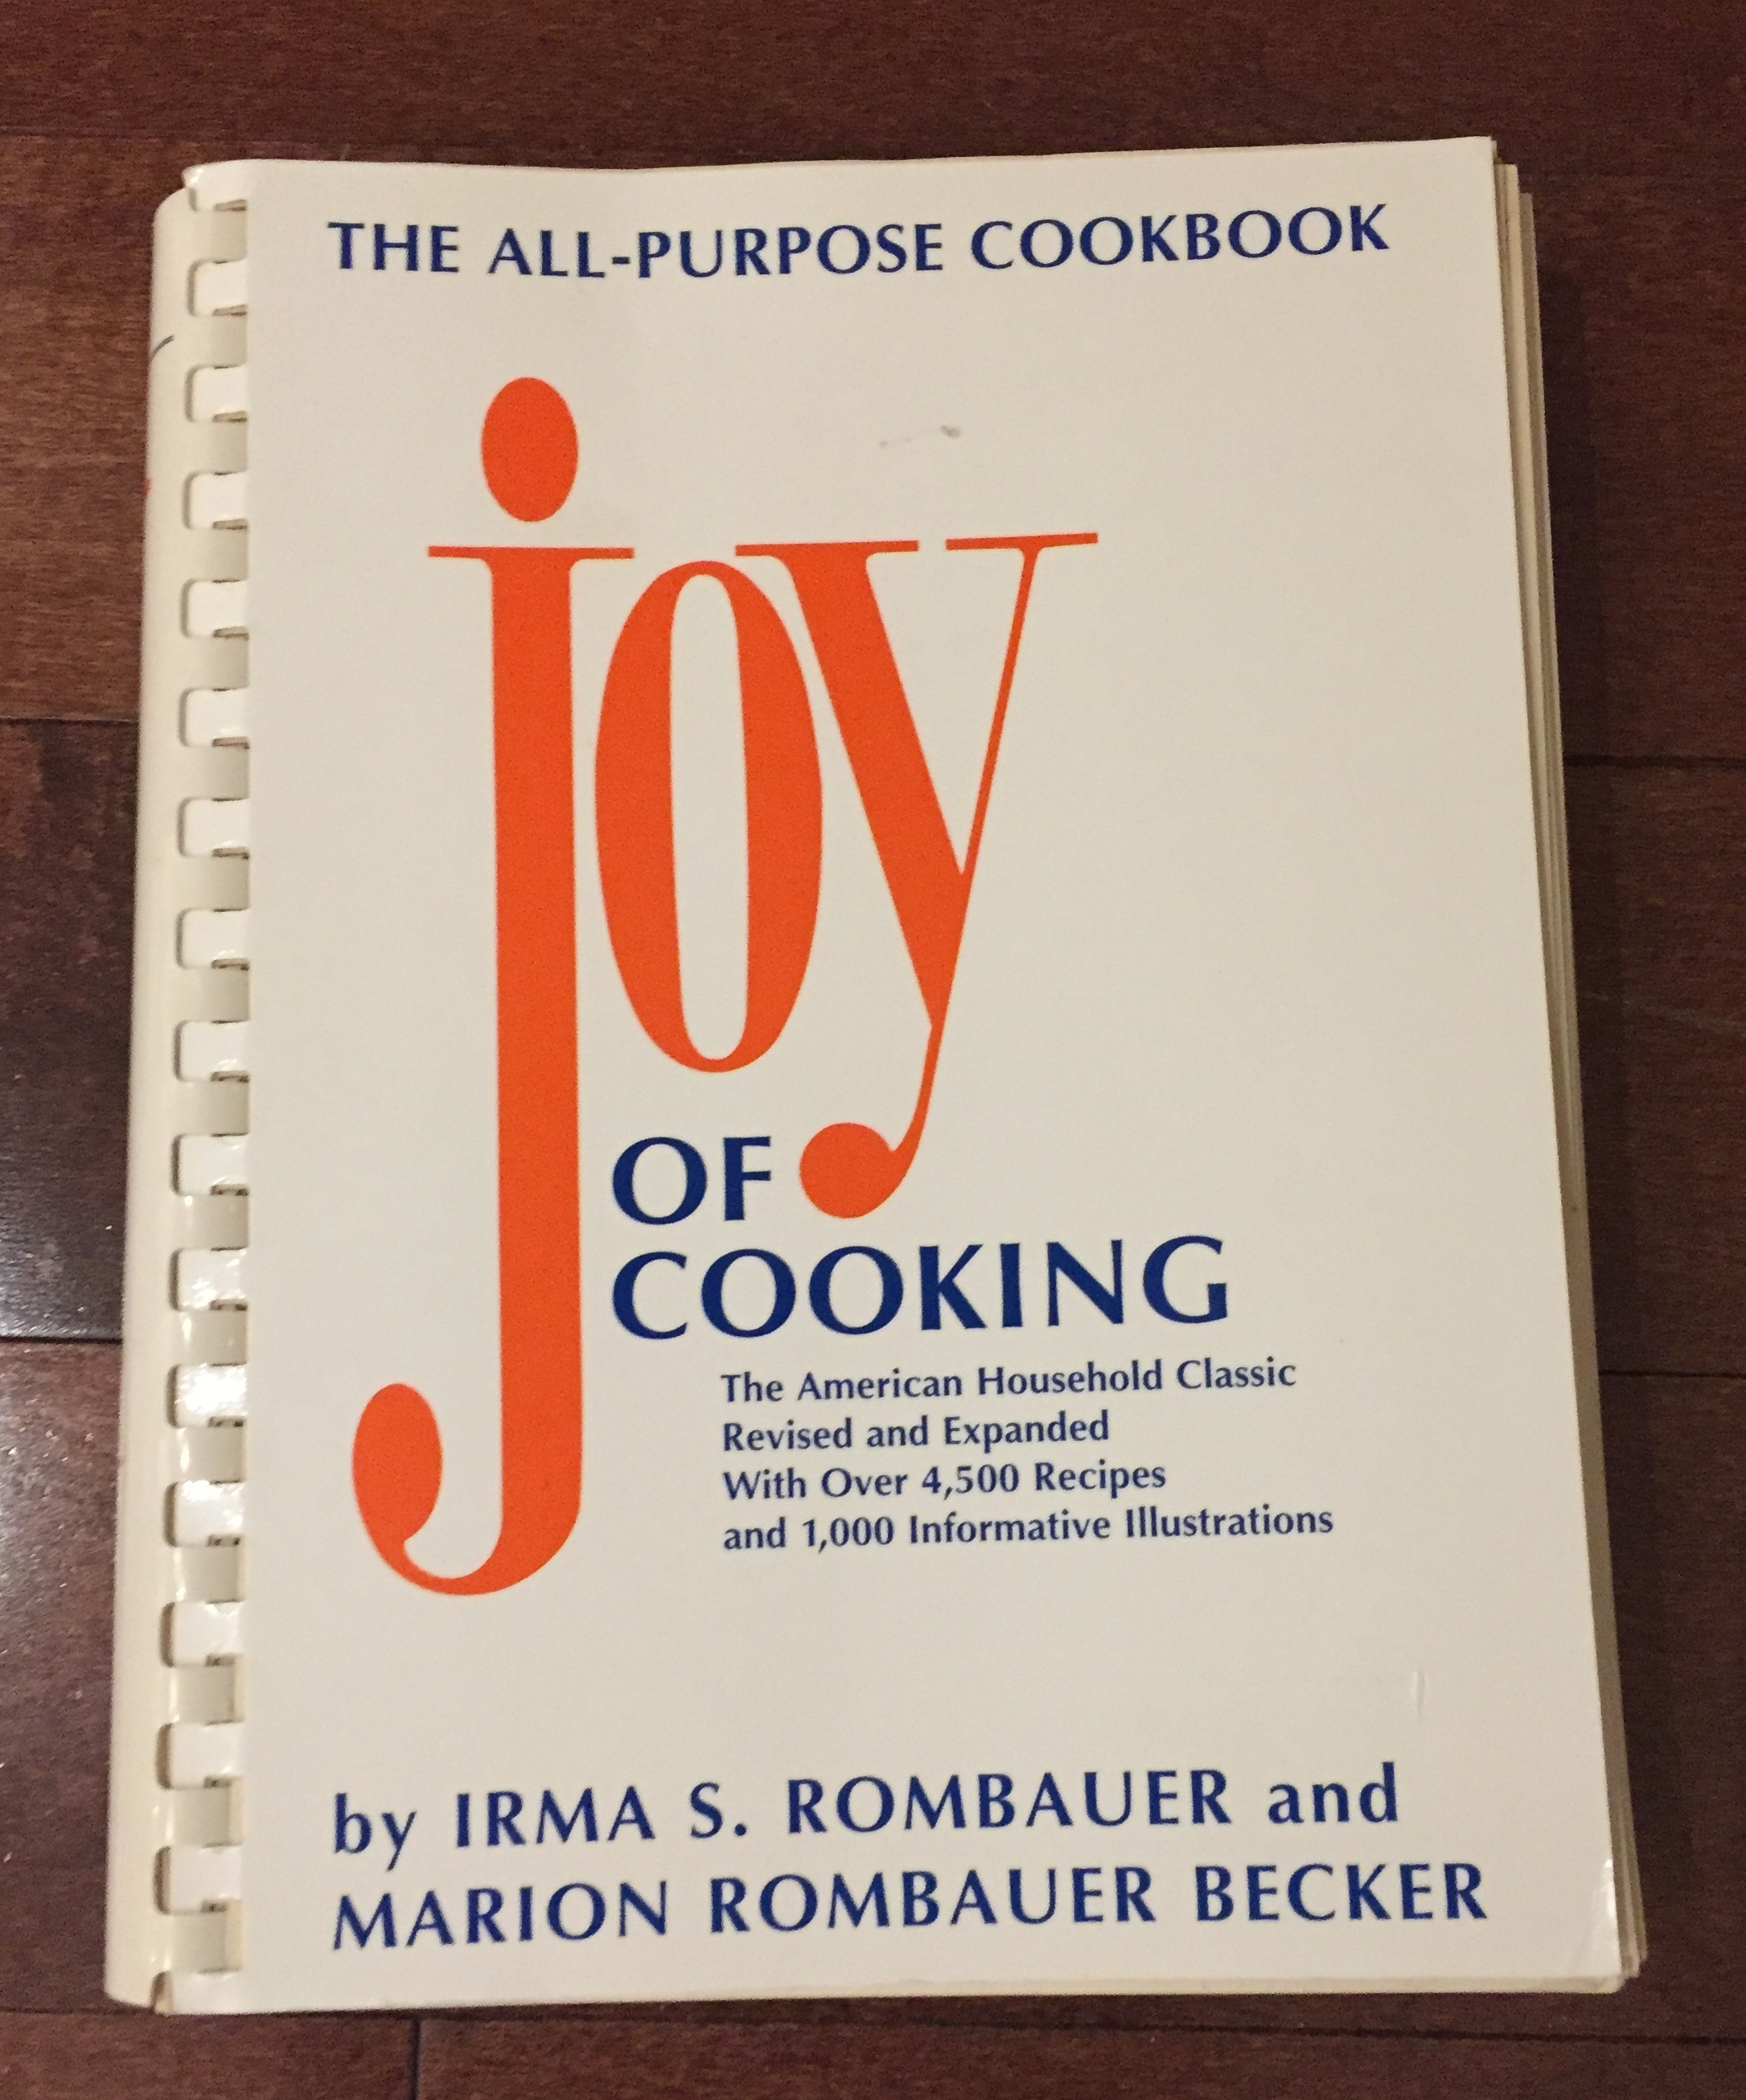 The Joy of Cooking. This book has been more of a educational book then anything. I have made a few recipes, but I just love the history of this book. It was made almost 100 years ago by a women who wanted to make a stock pile of recipes, and who was also coping with the loss of her husband. I know this may seem like a generic pick but I find this book exciting and incredibly interesting. Definetly a staple for the home cook.